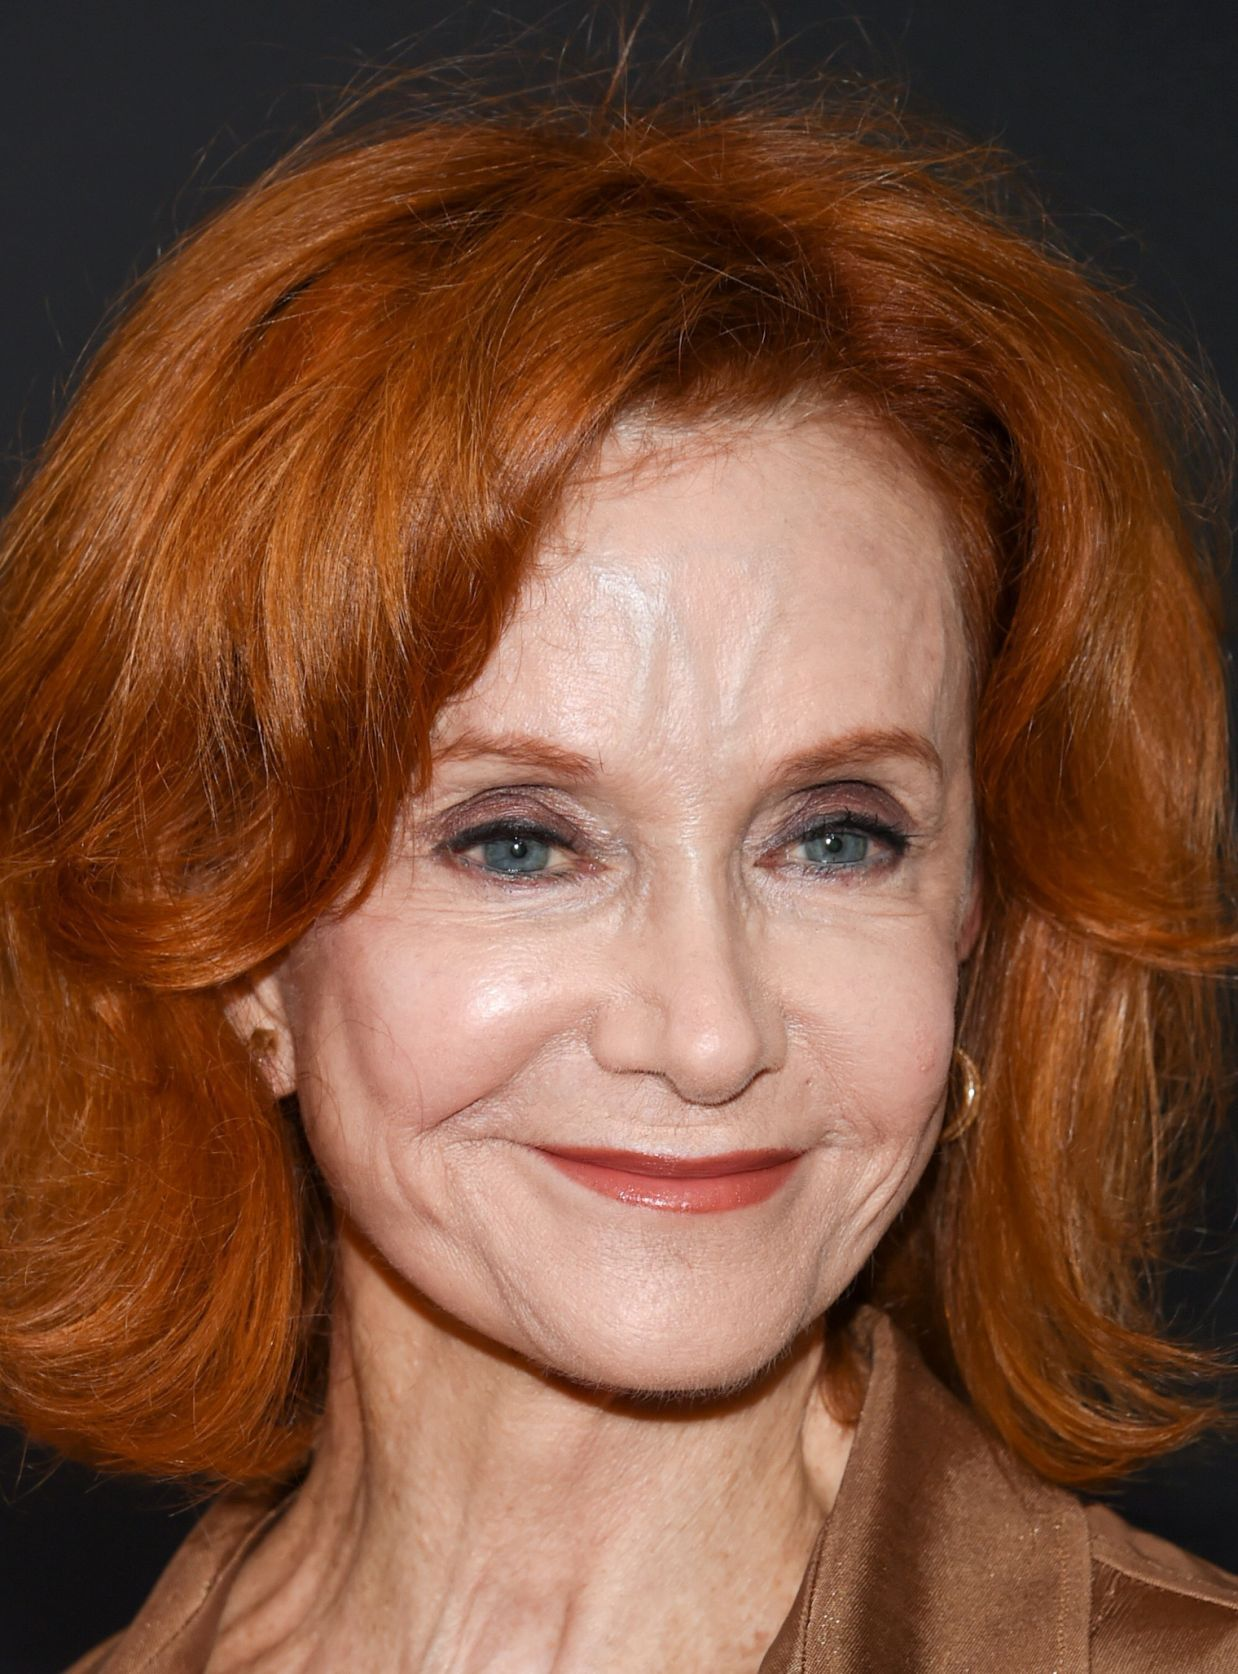 Swoosie Kurtz lethal weapon